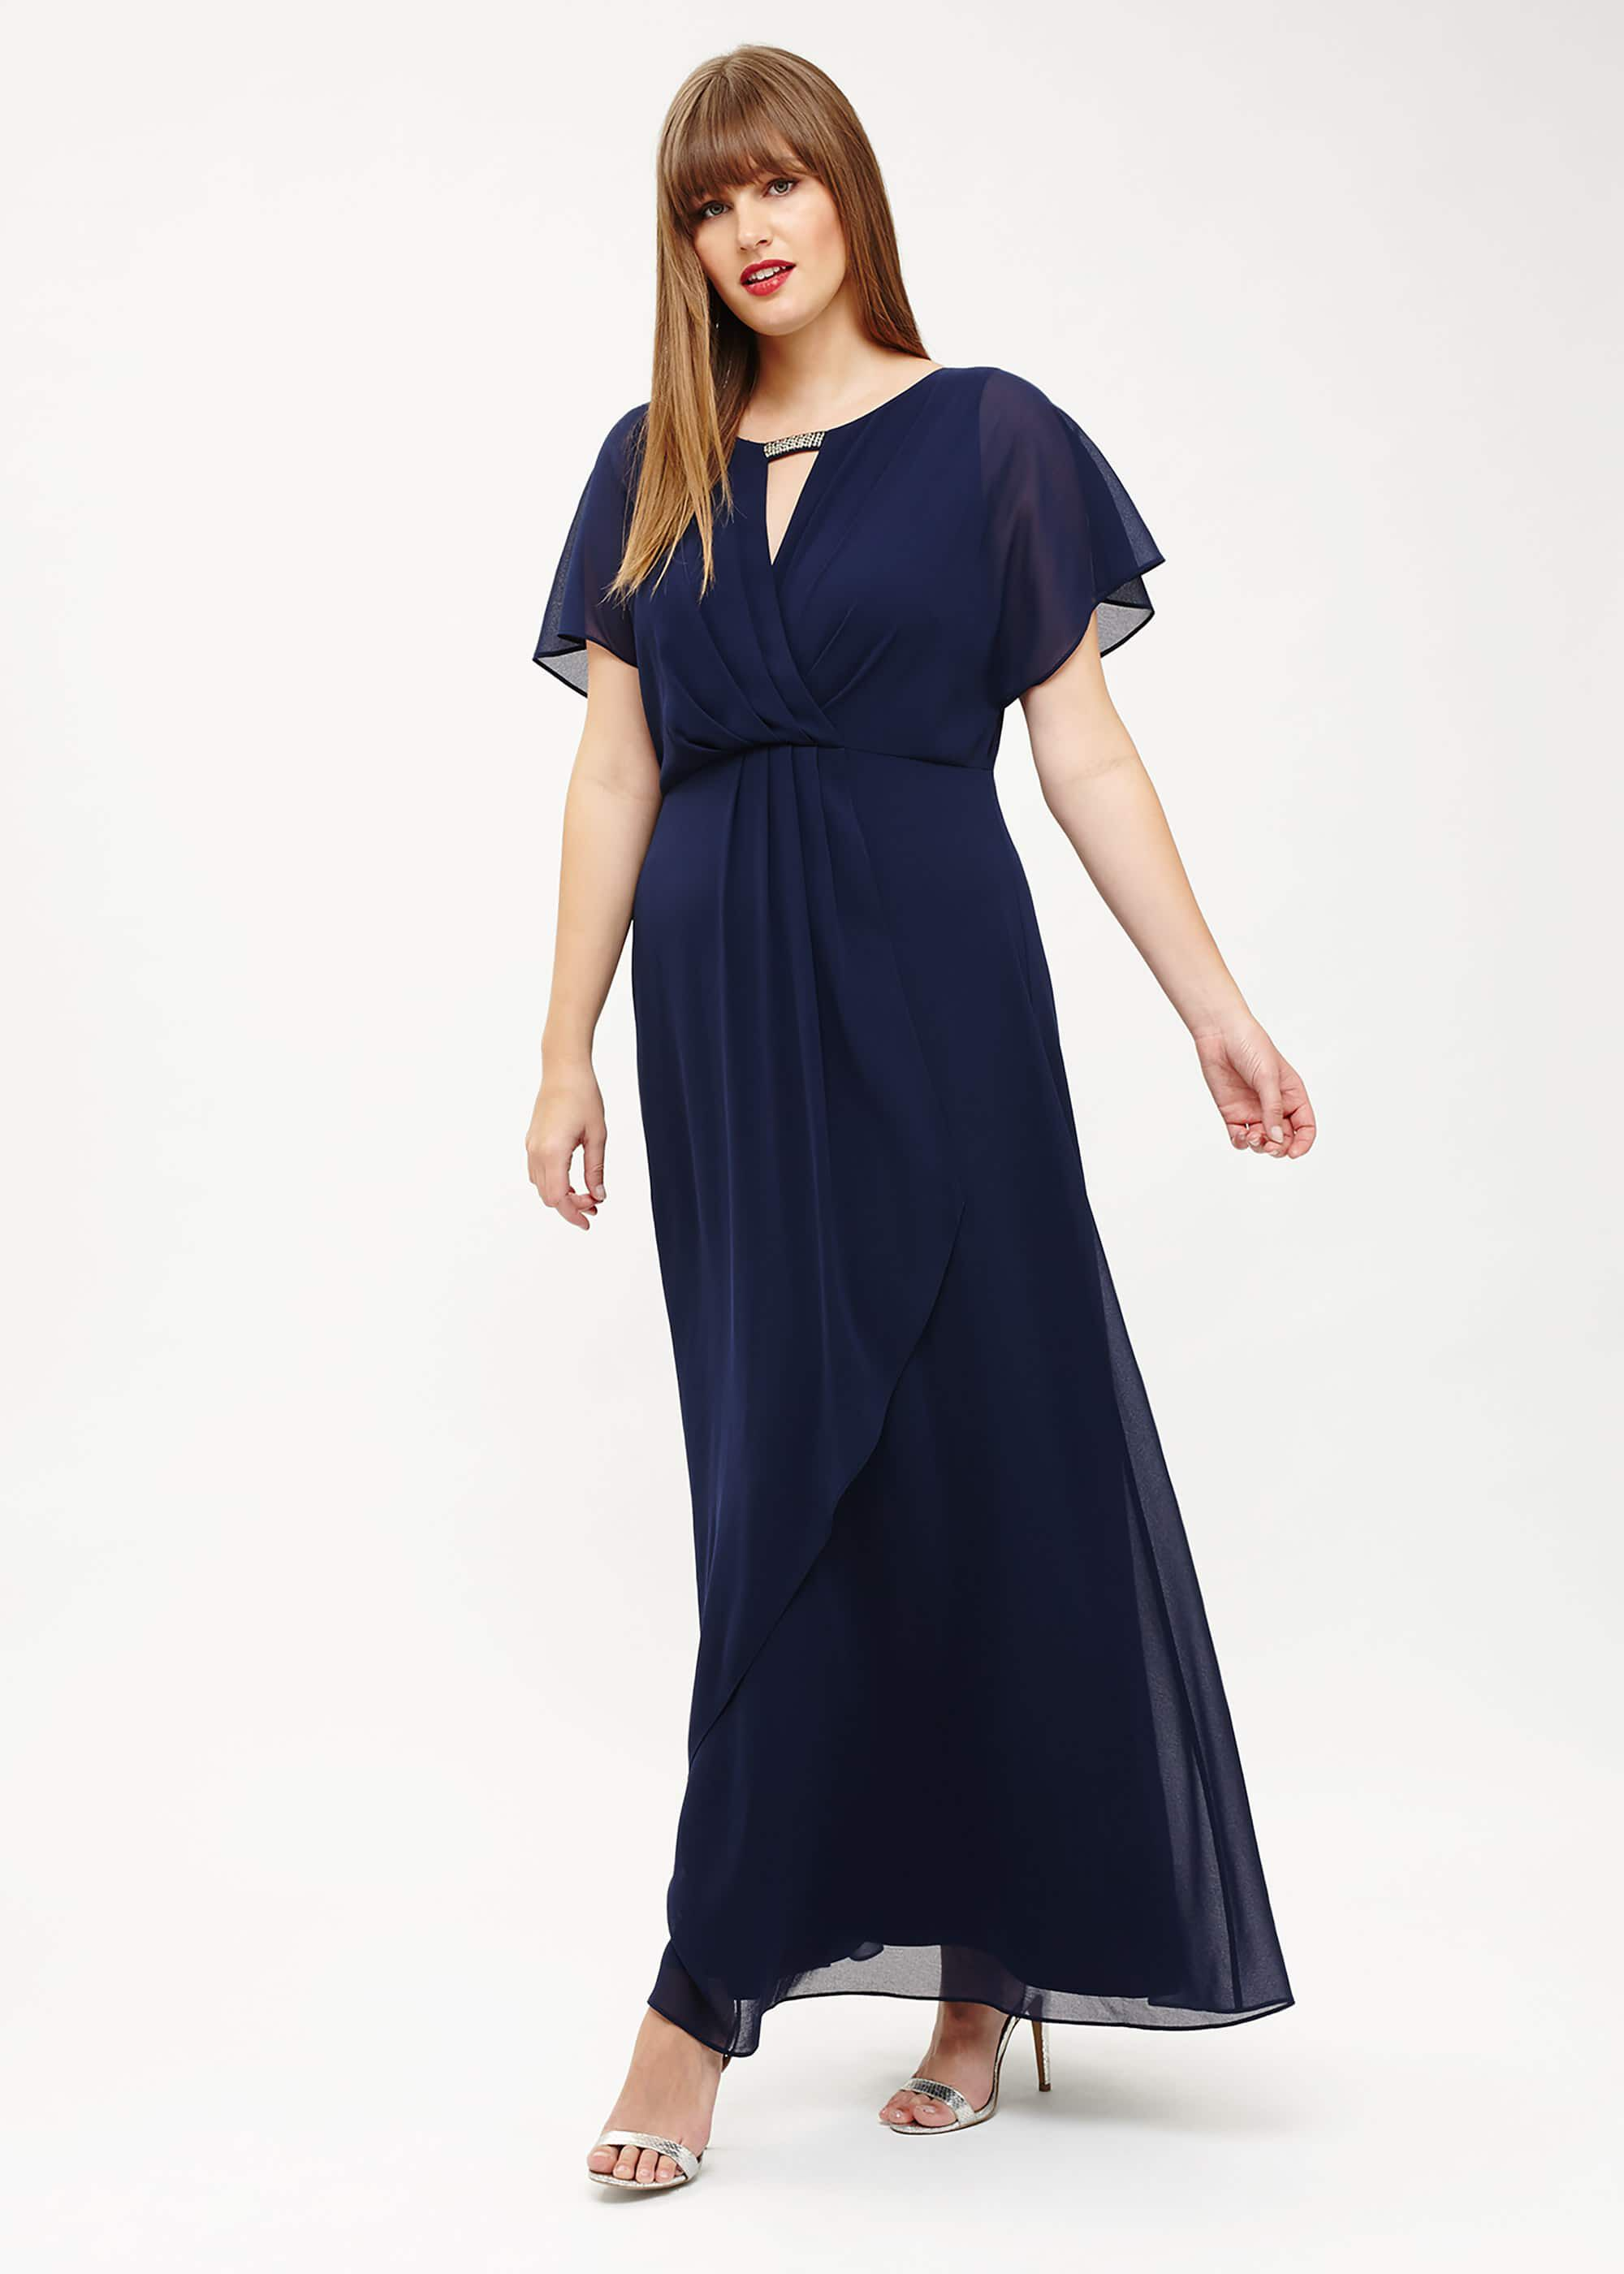 f958b5a01aec Phase Eight Bridesmaid Dresses Mother of the Bride Wedding Outfits